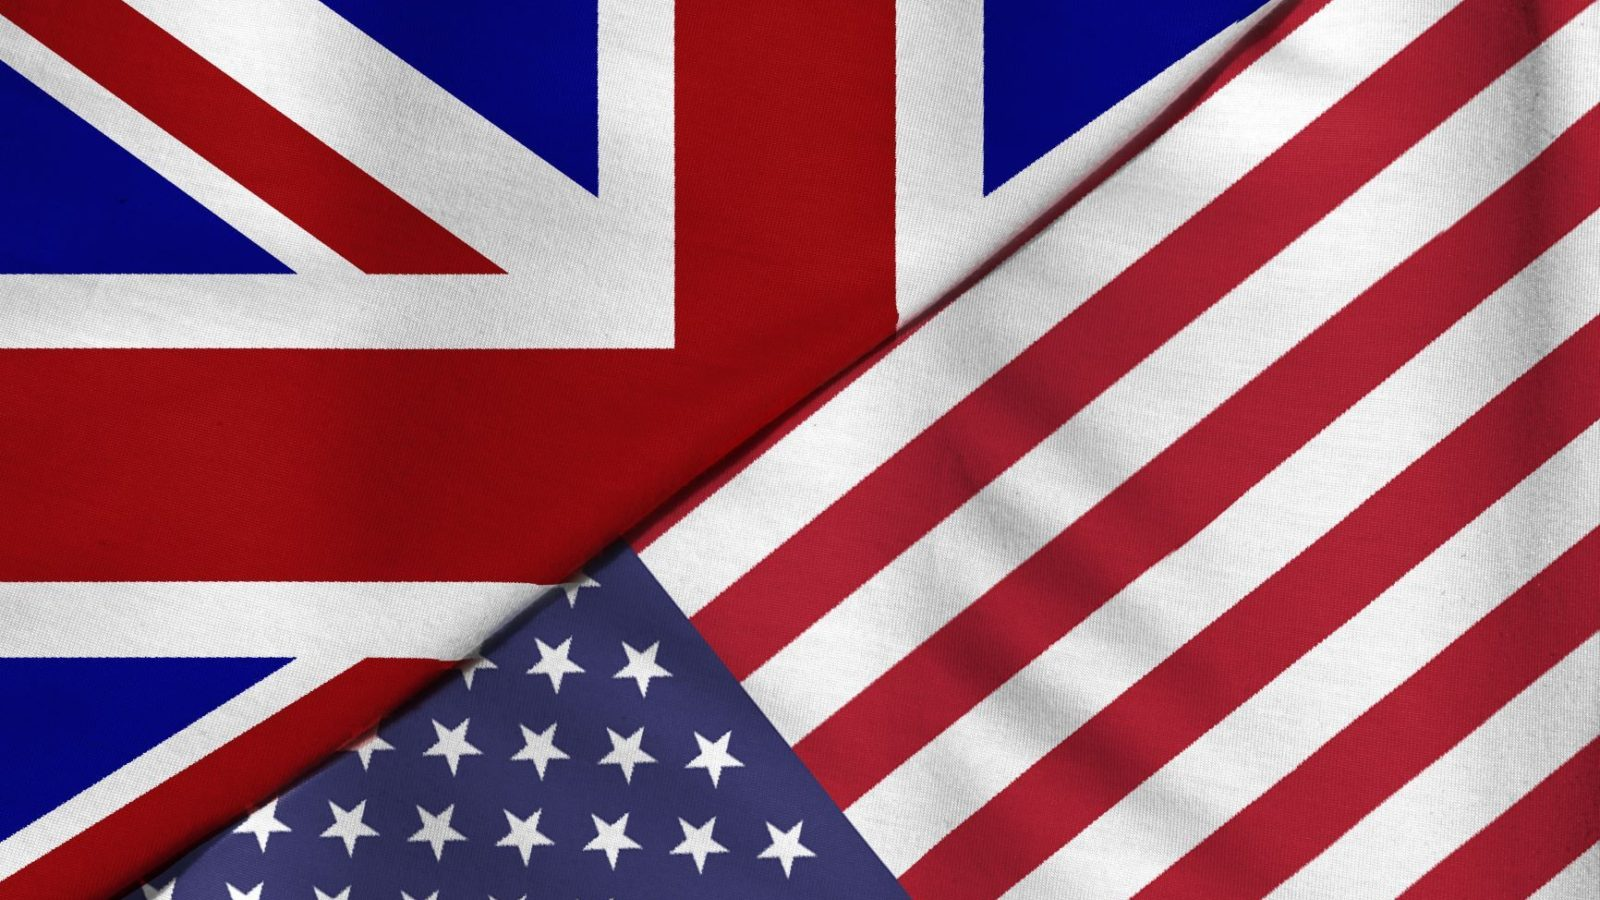 The UK and US are to open formal negotiations on a future free trade agreement